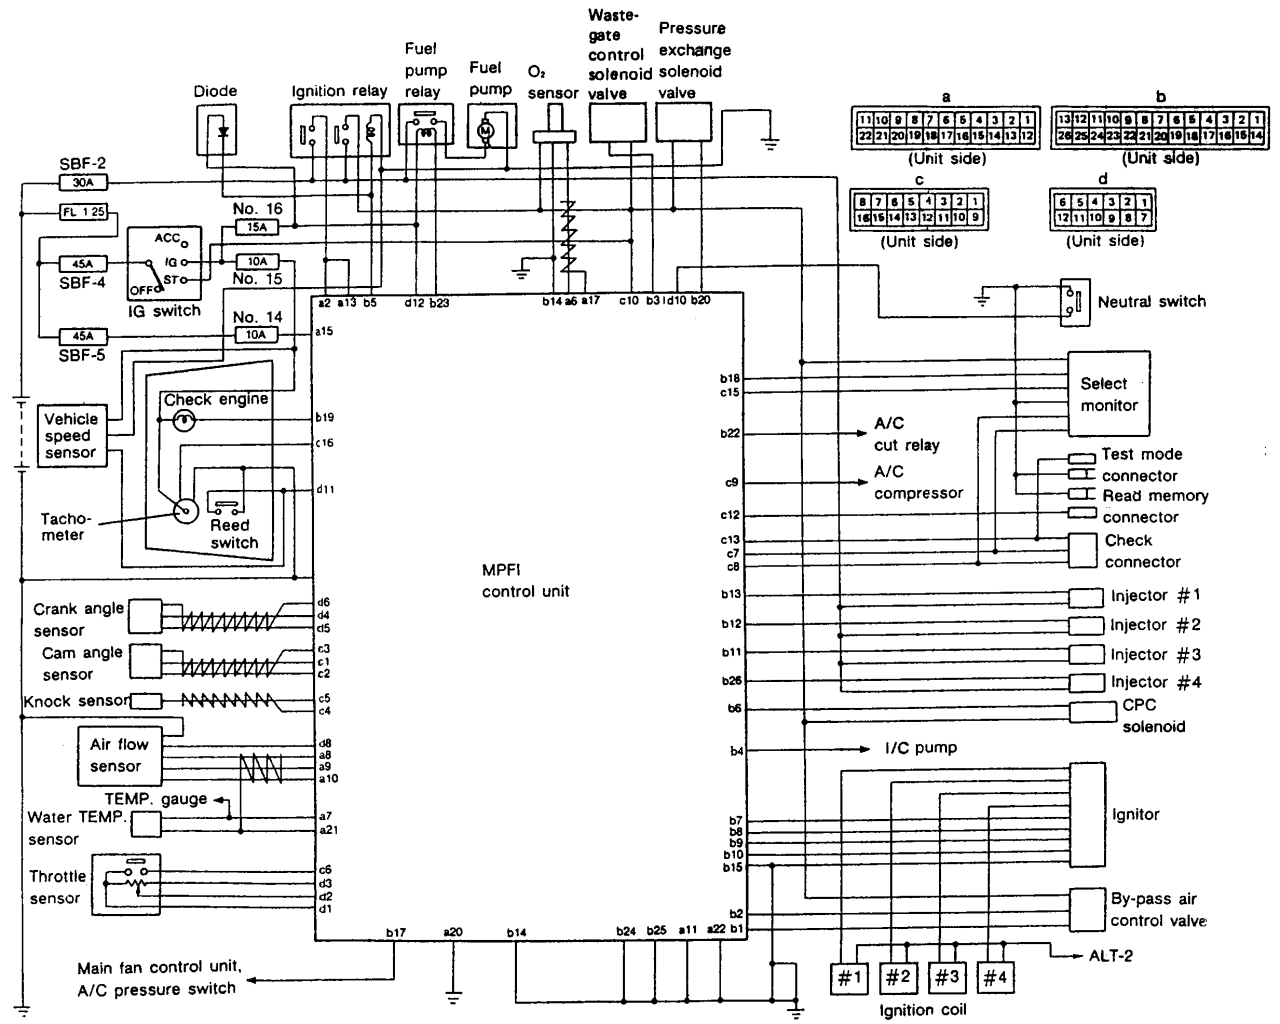 2000 subaru impreza engine diagram wiring diagram data rh 7 ewfrew dbb heidelberg de